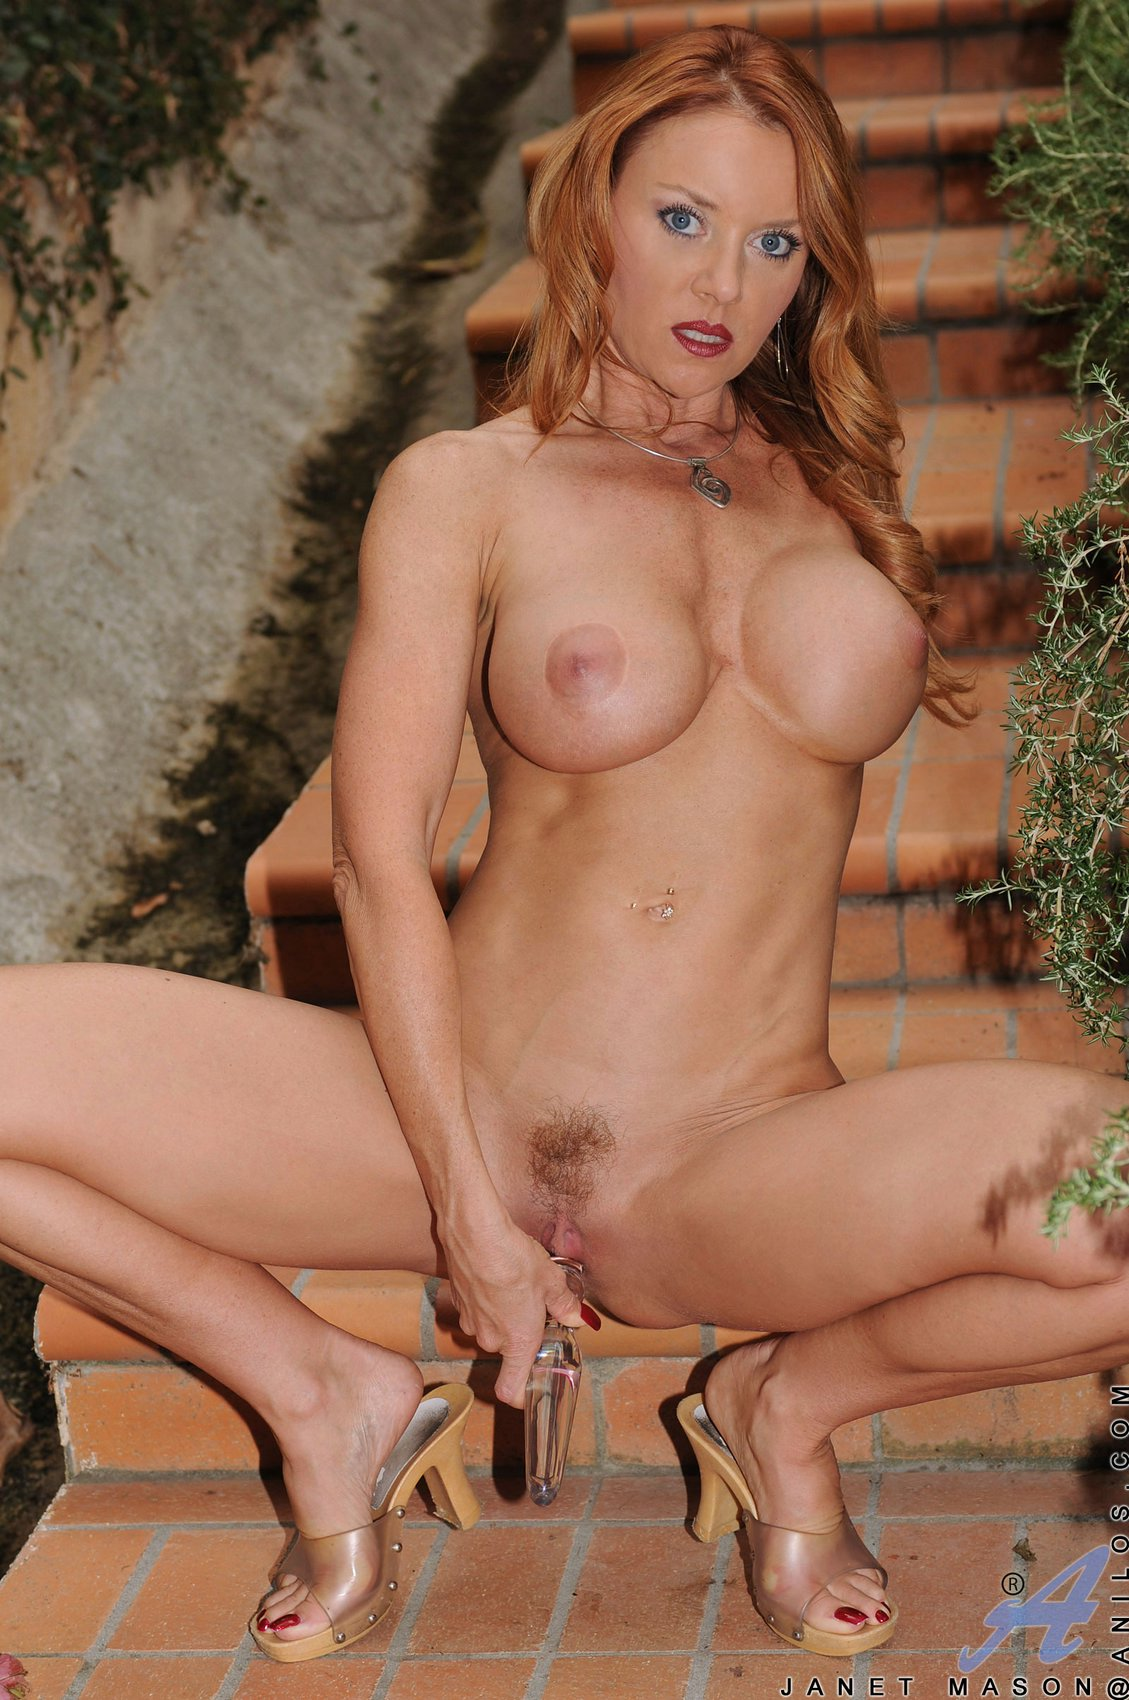 Consider, what Janet mason porn star nude consider